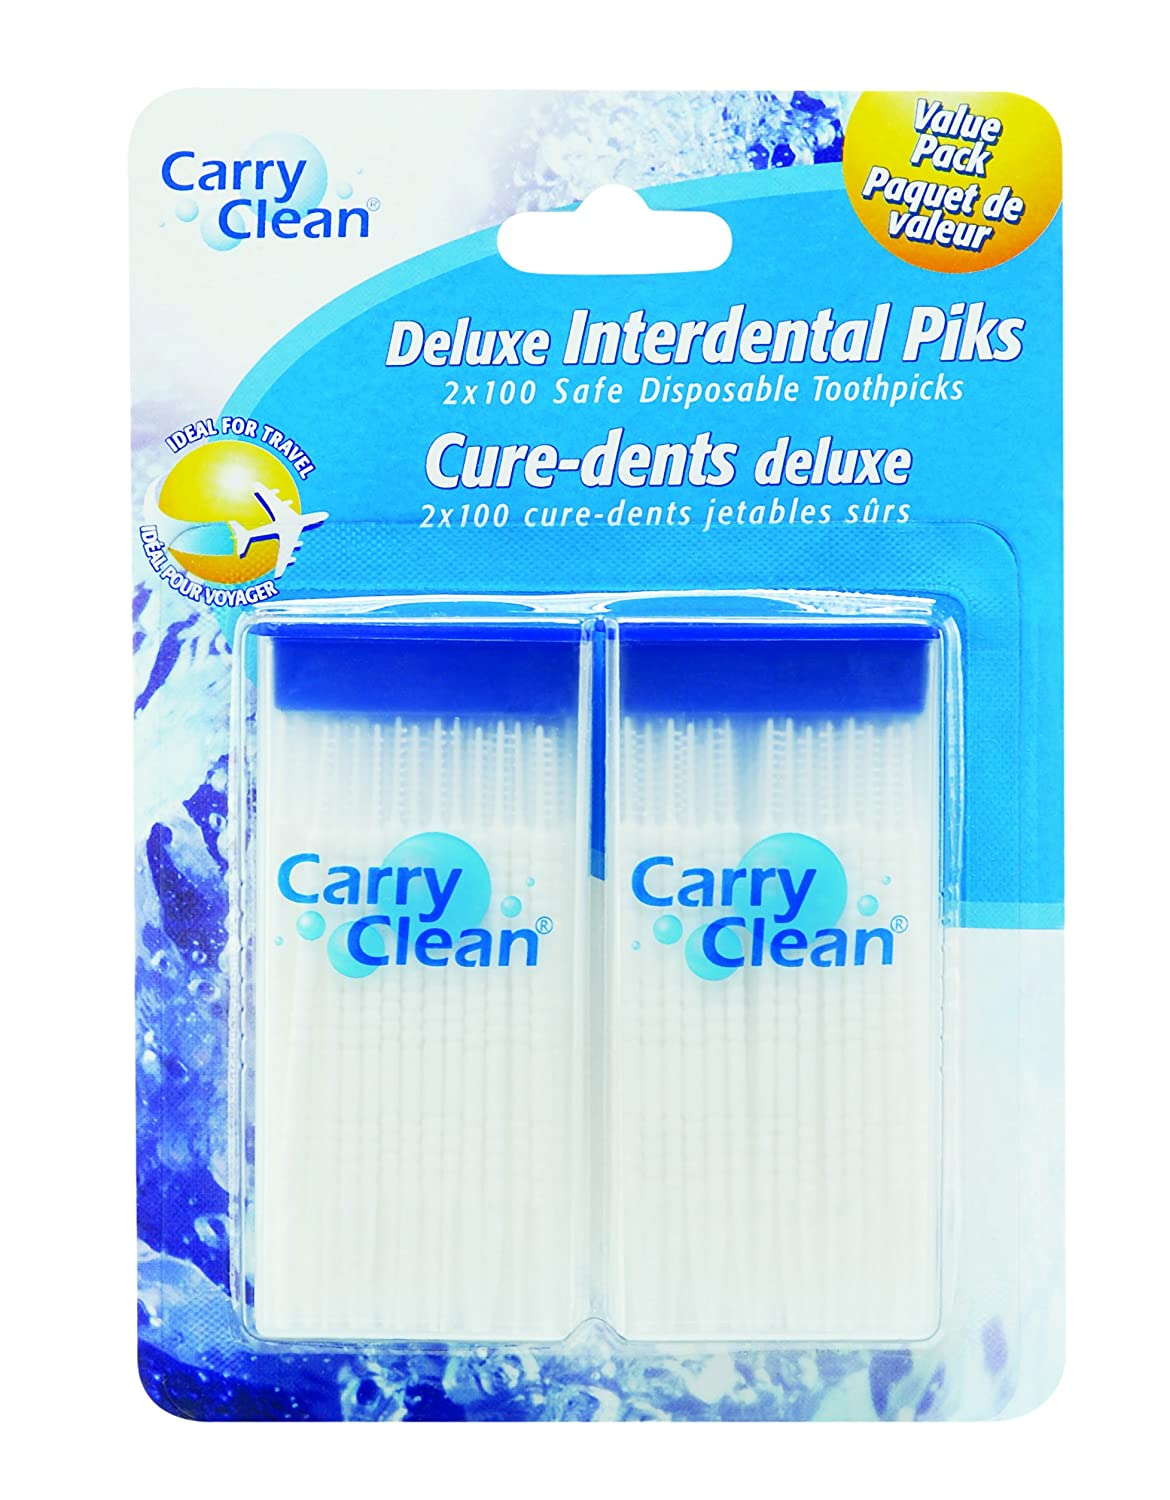 Carry Clean deluxe interdental piks, 200 Count ca health and personal care ALVDV